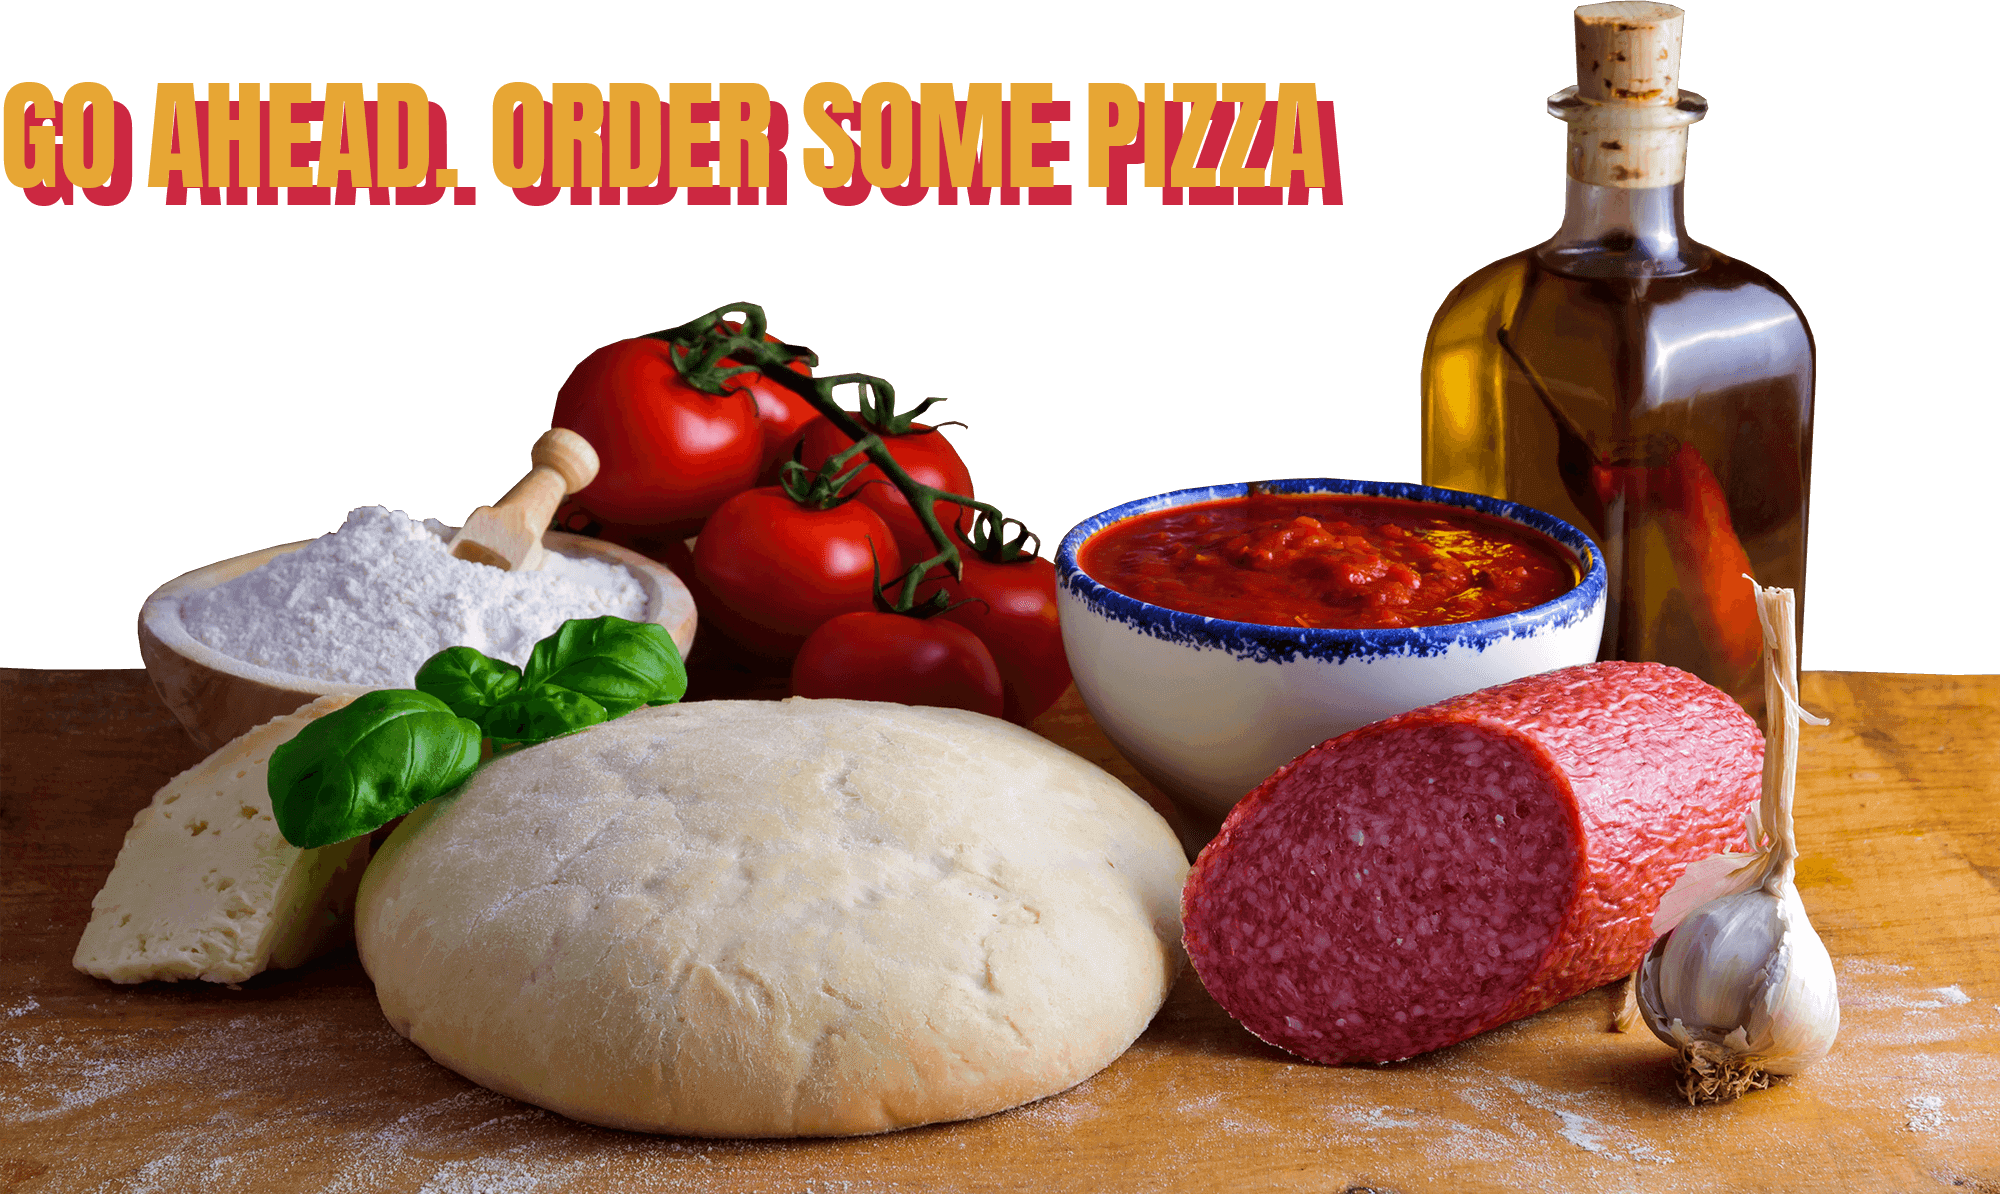 Order some pizza